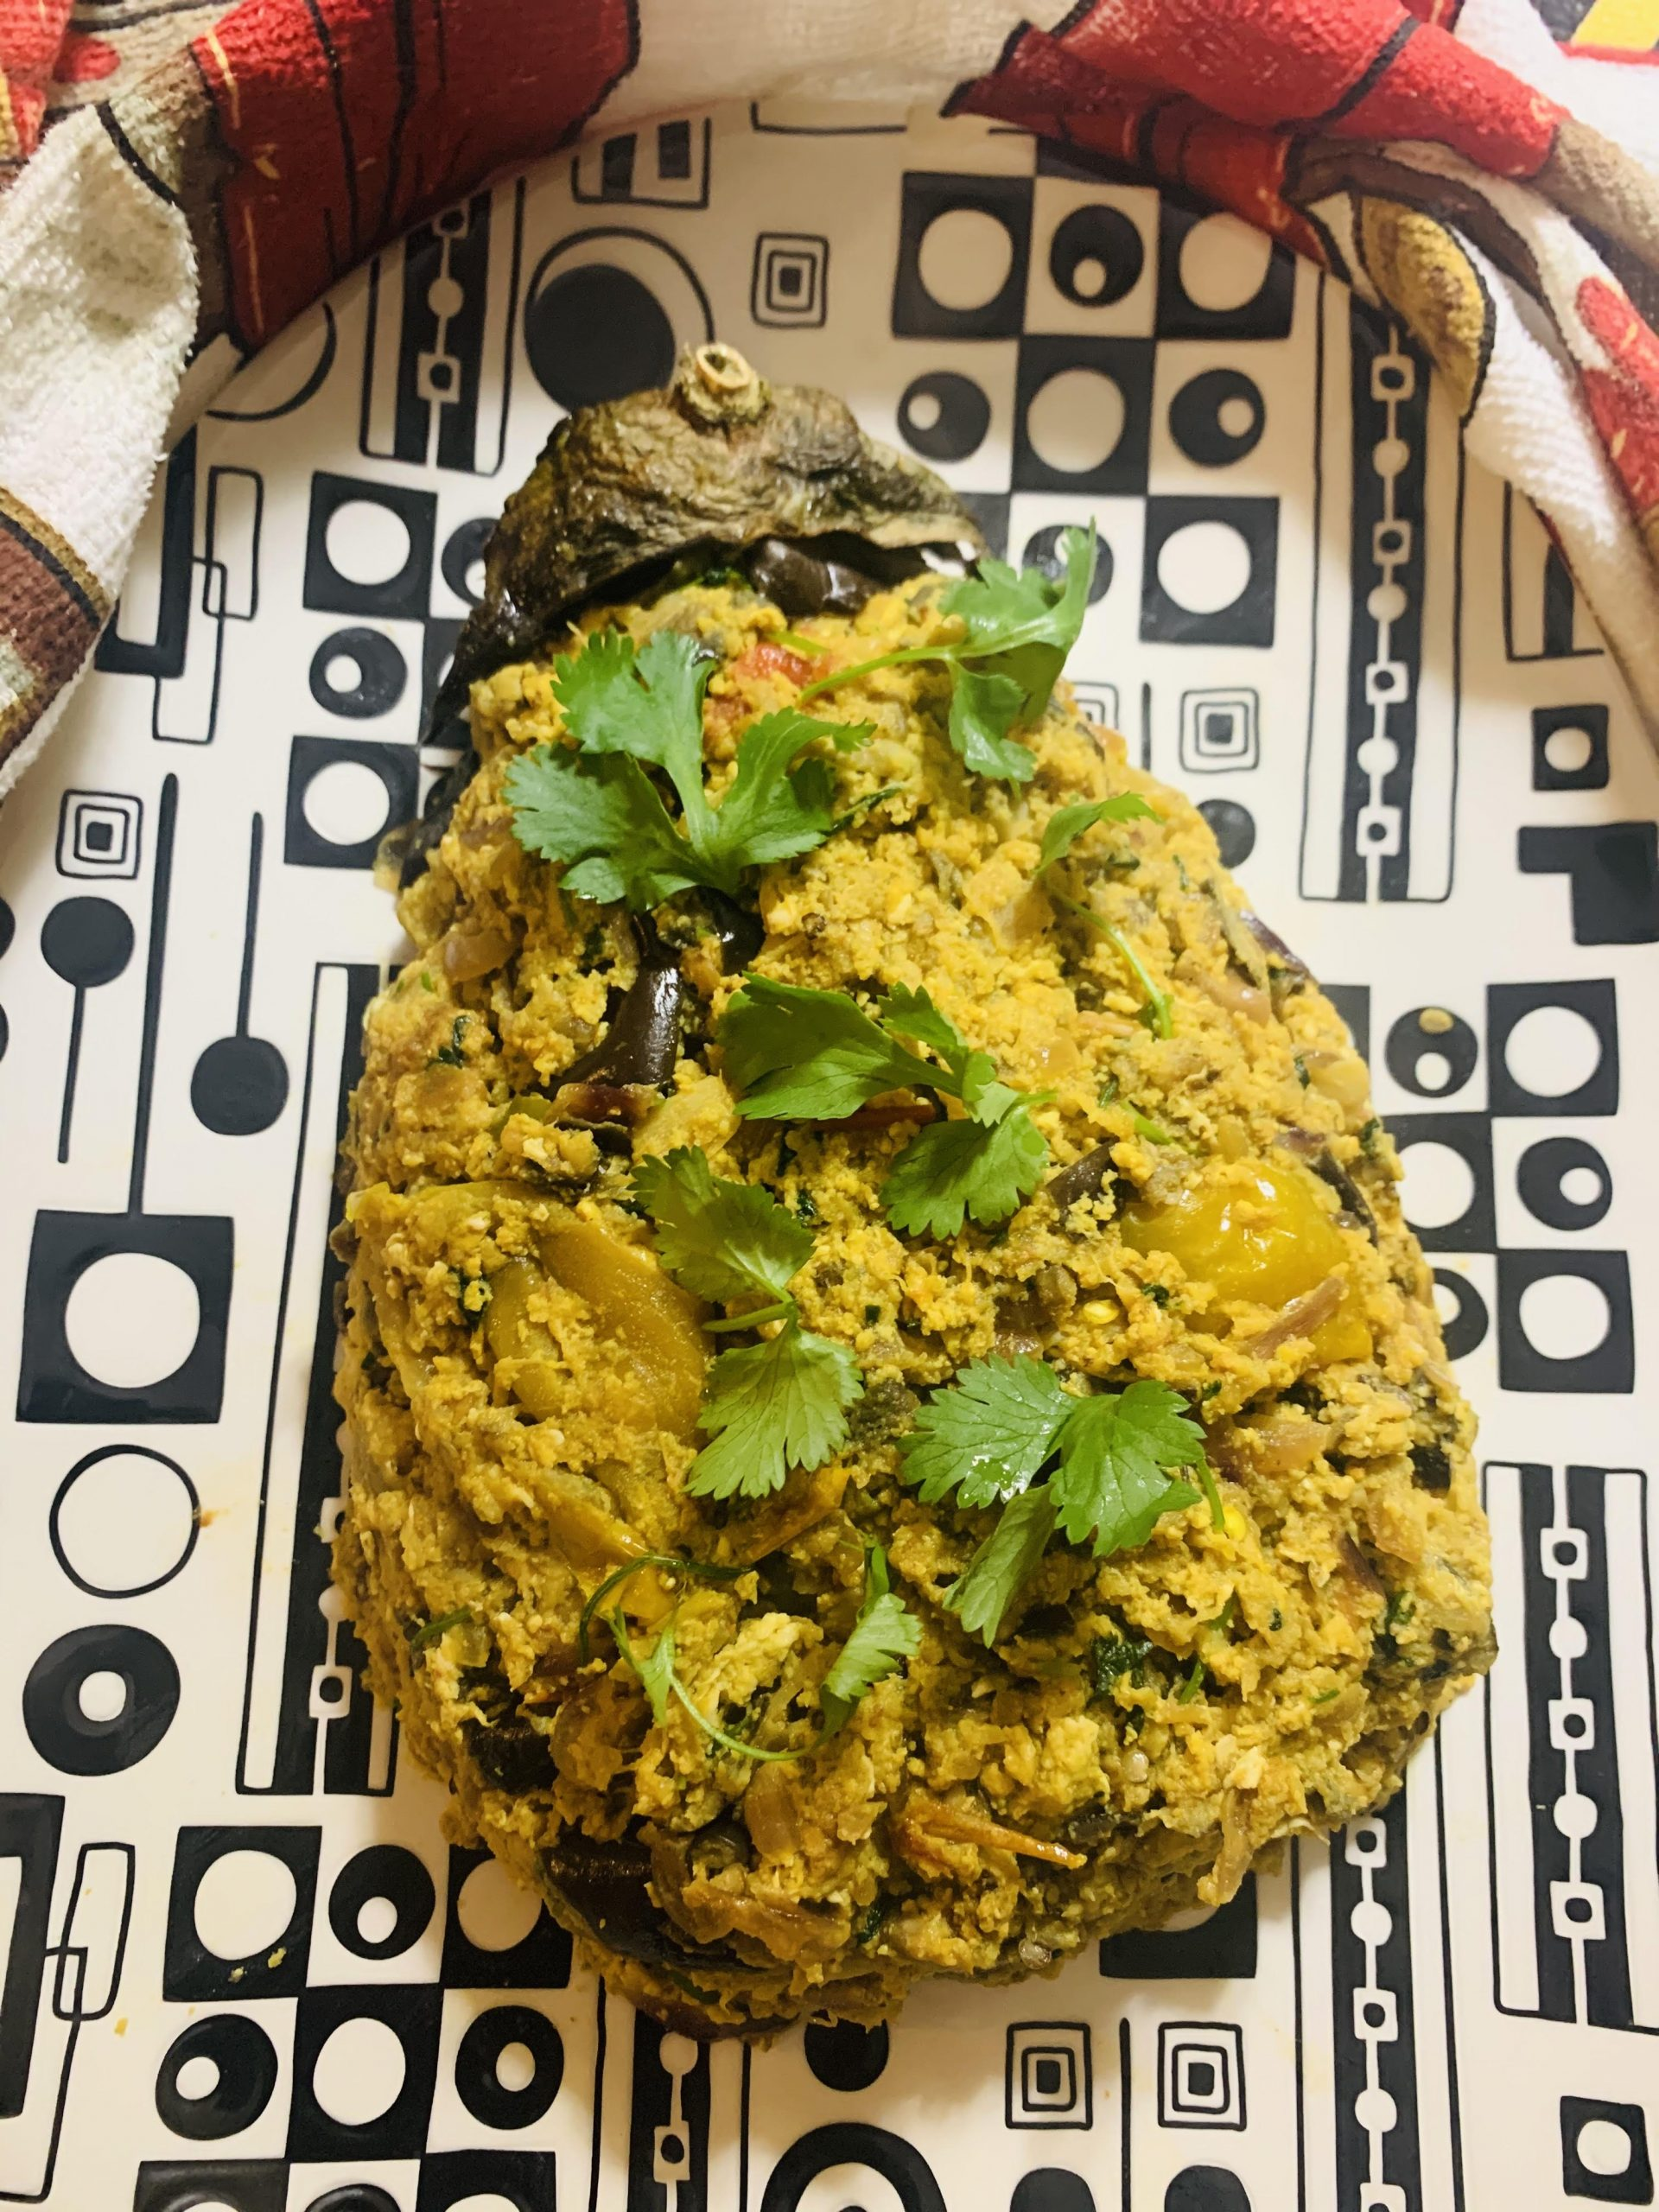 Roasted Eggplant with Eggs